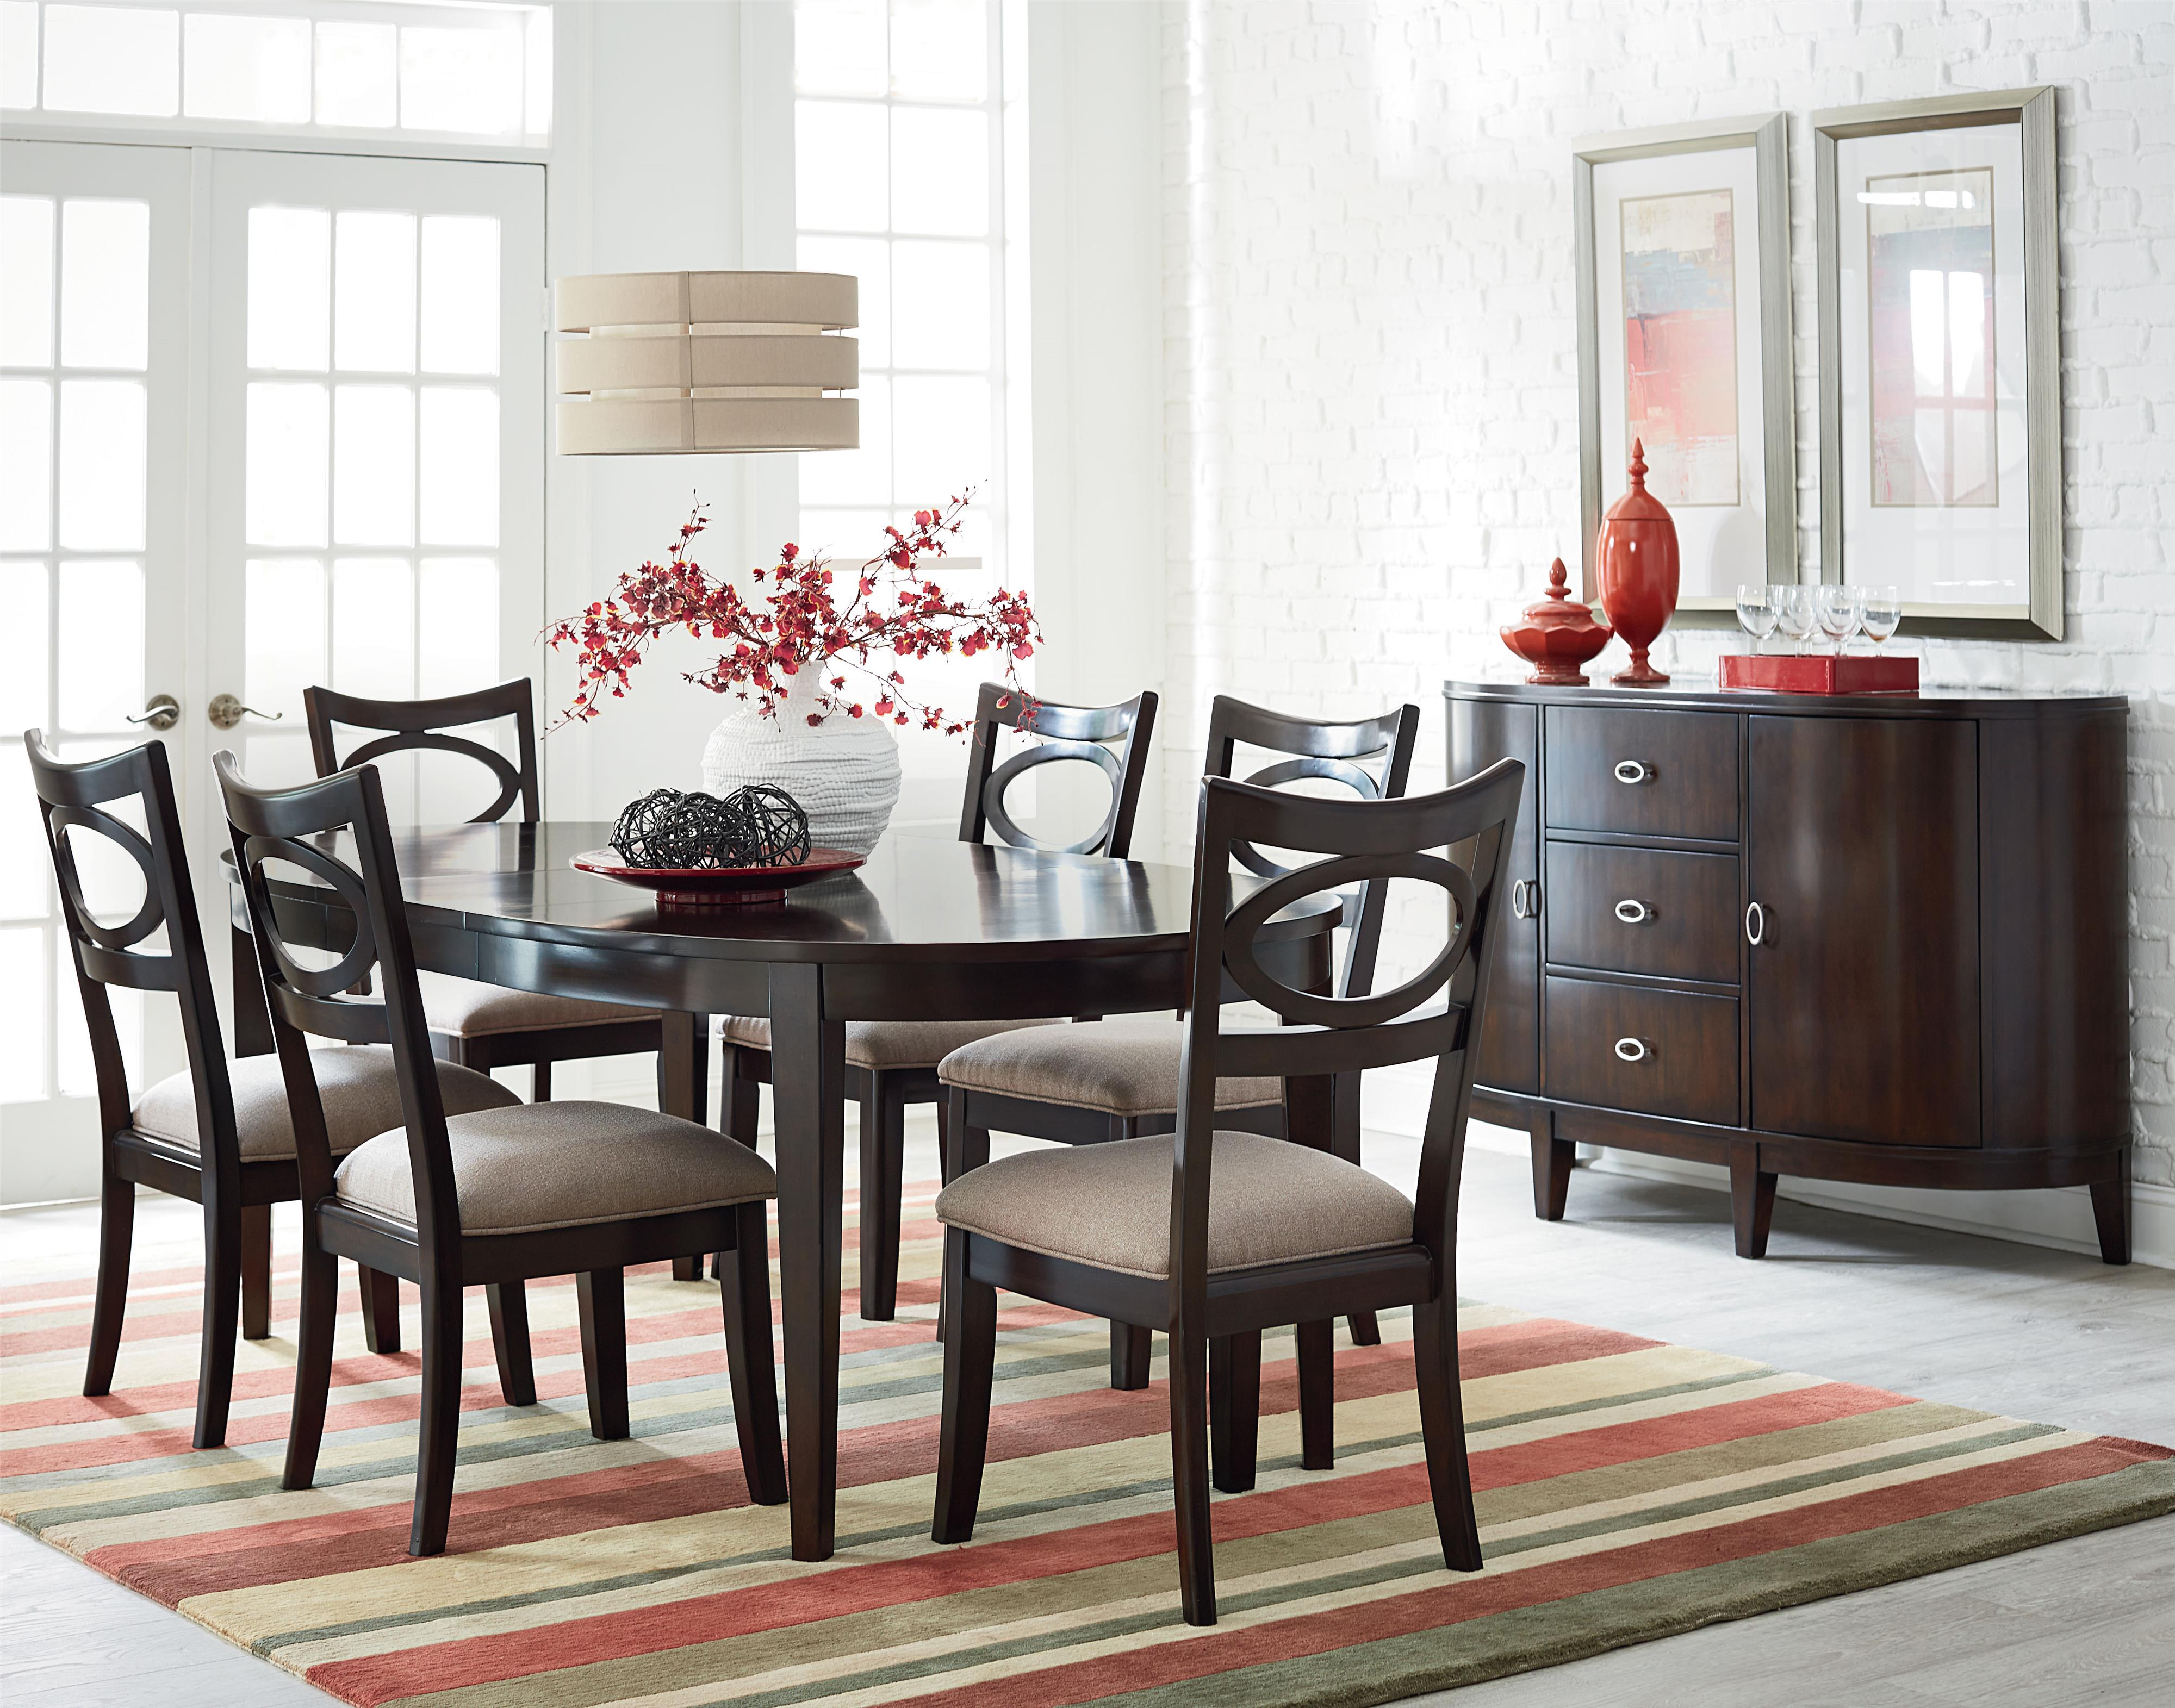 Standard Furniture Serenity Casual Dining Room Group - Item Number: 1714 Casual Dining Room Group 1